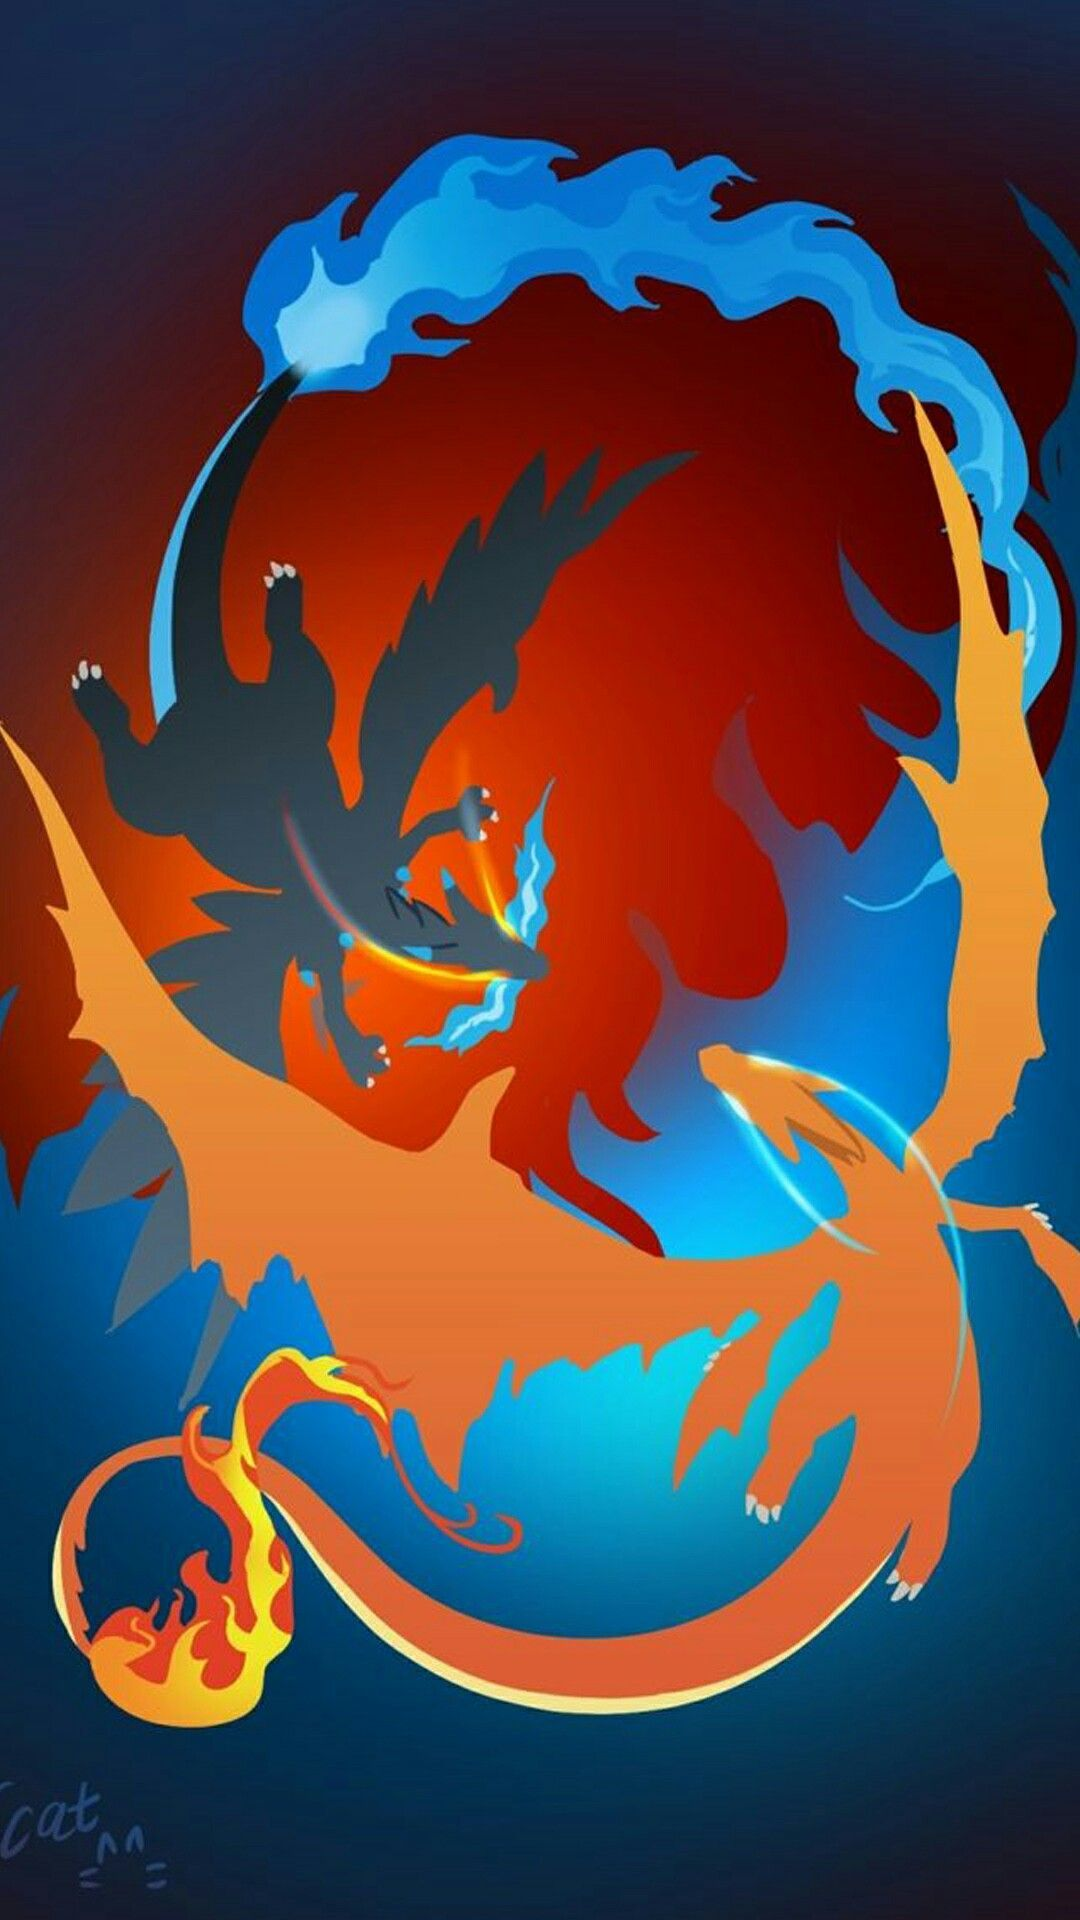 Charizard Pokemon Wallpaper Iphone En 2020 Dibujos De Pokemon